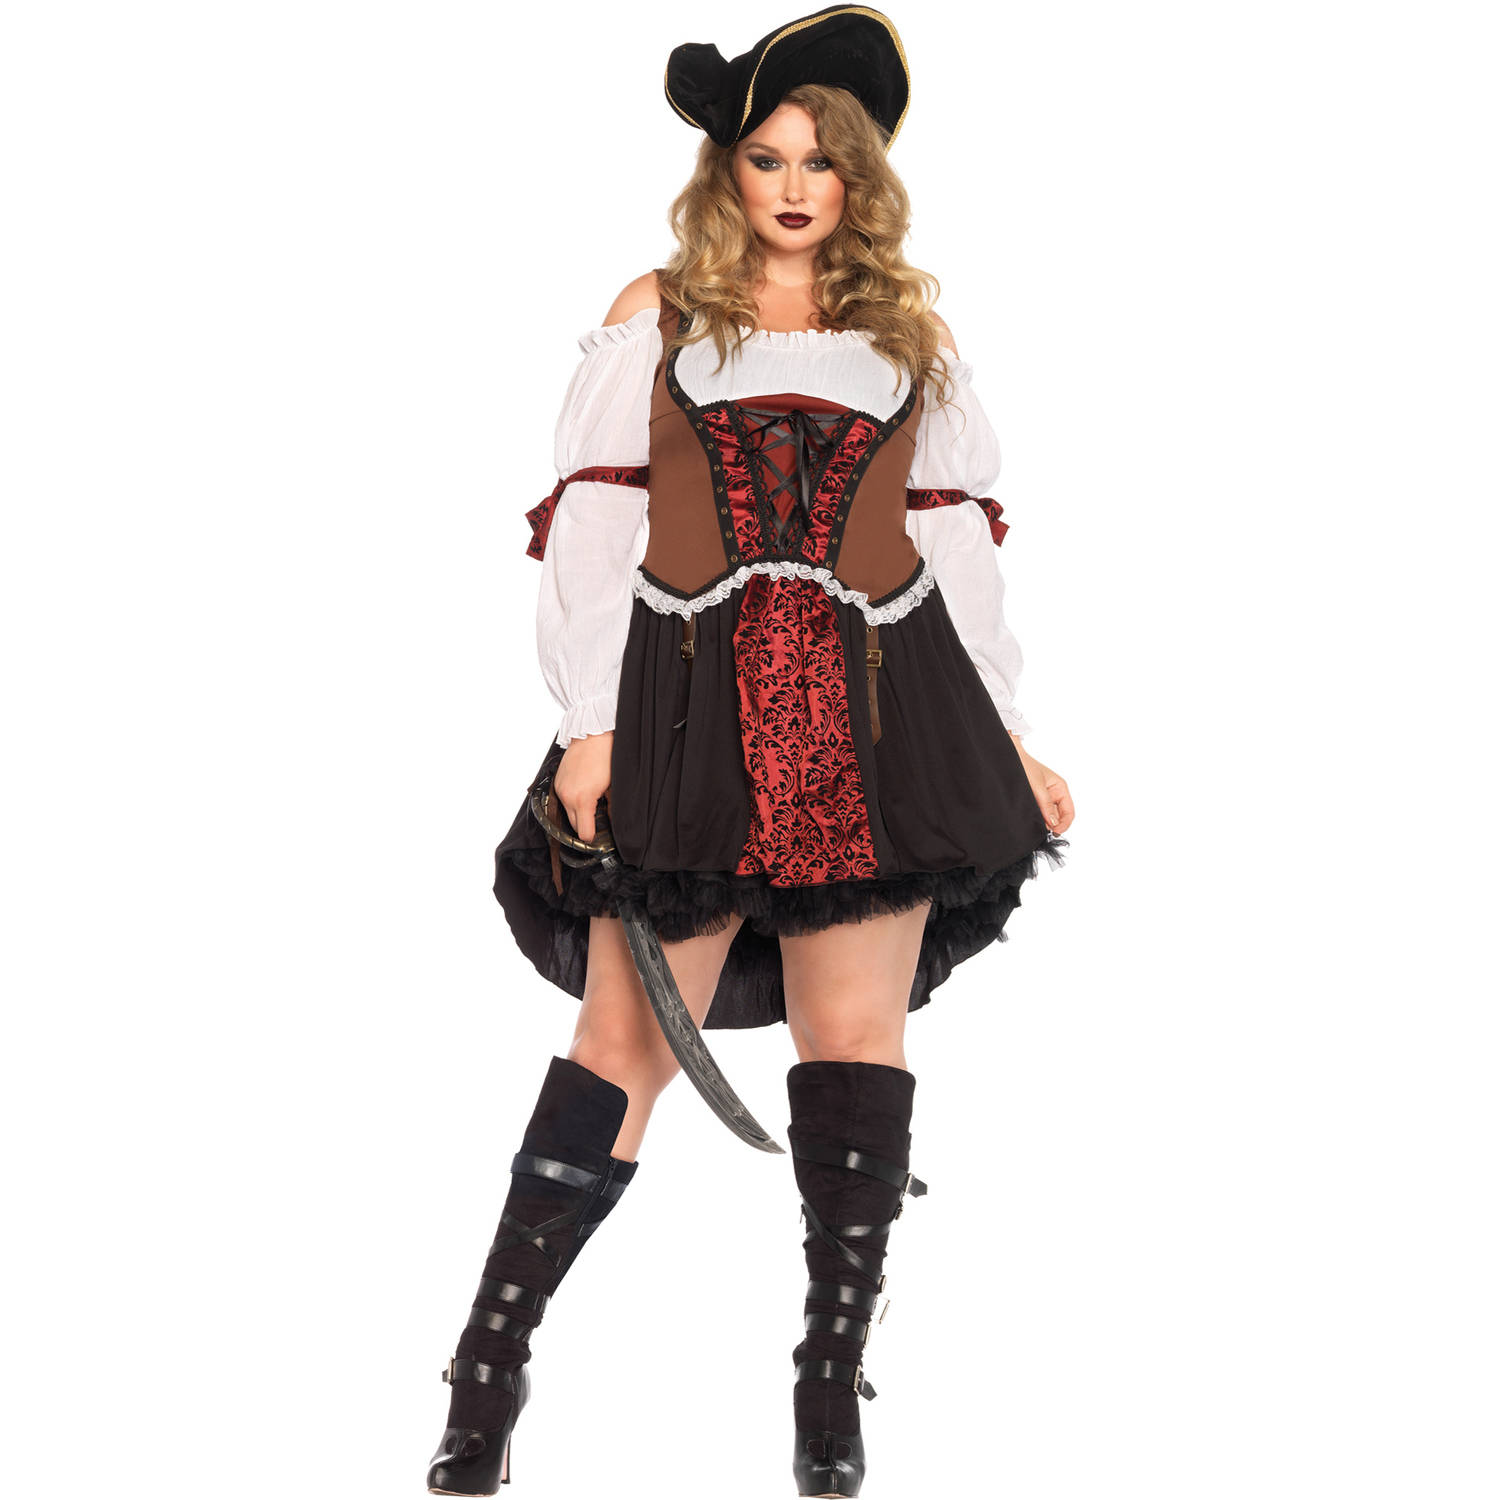 Leg Avenue Women's Plus-Size Ruthless Pirate Wench Costume, Multi, 1X